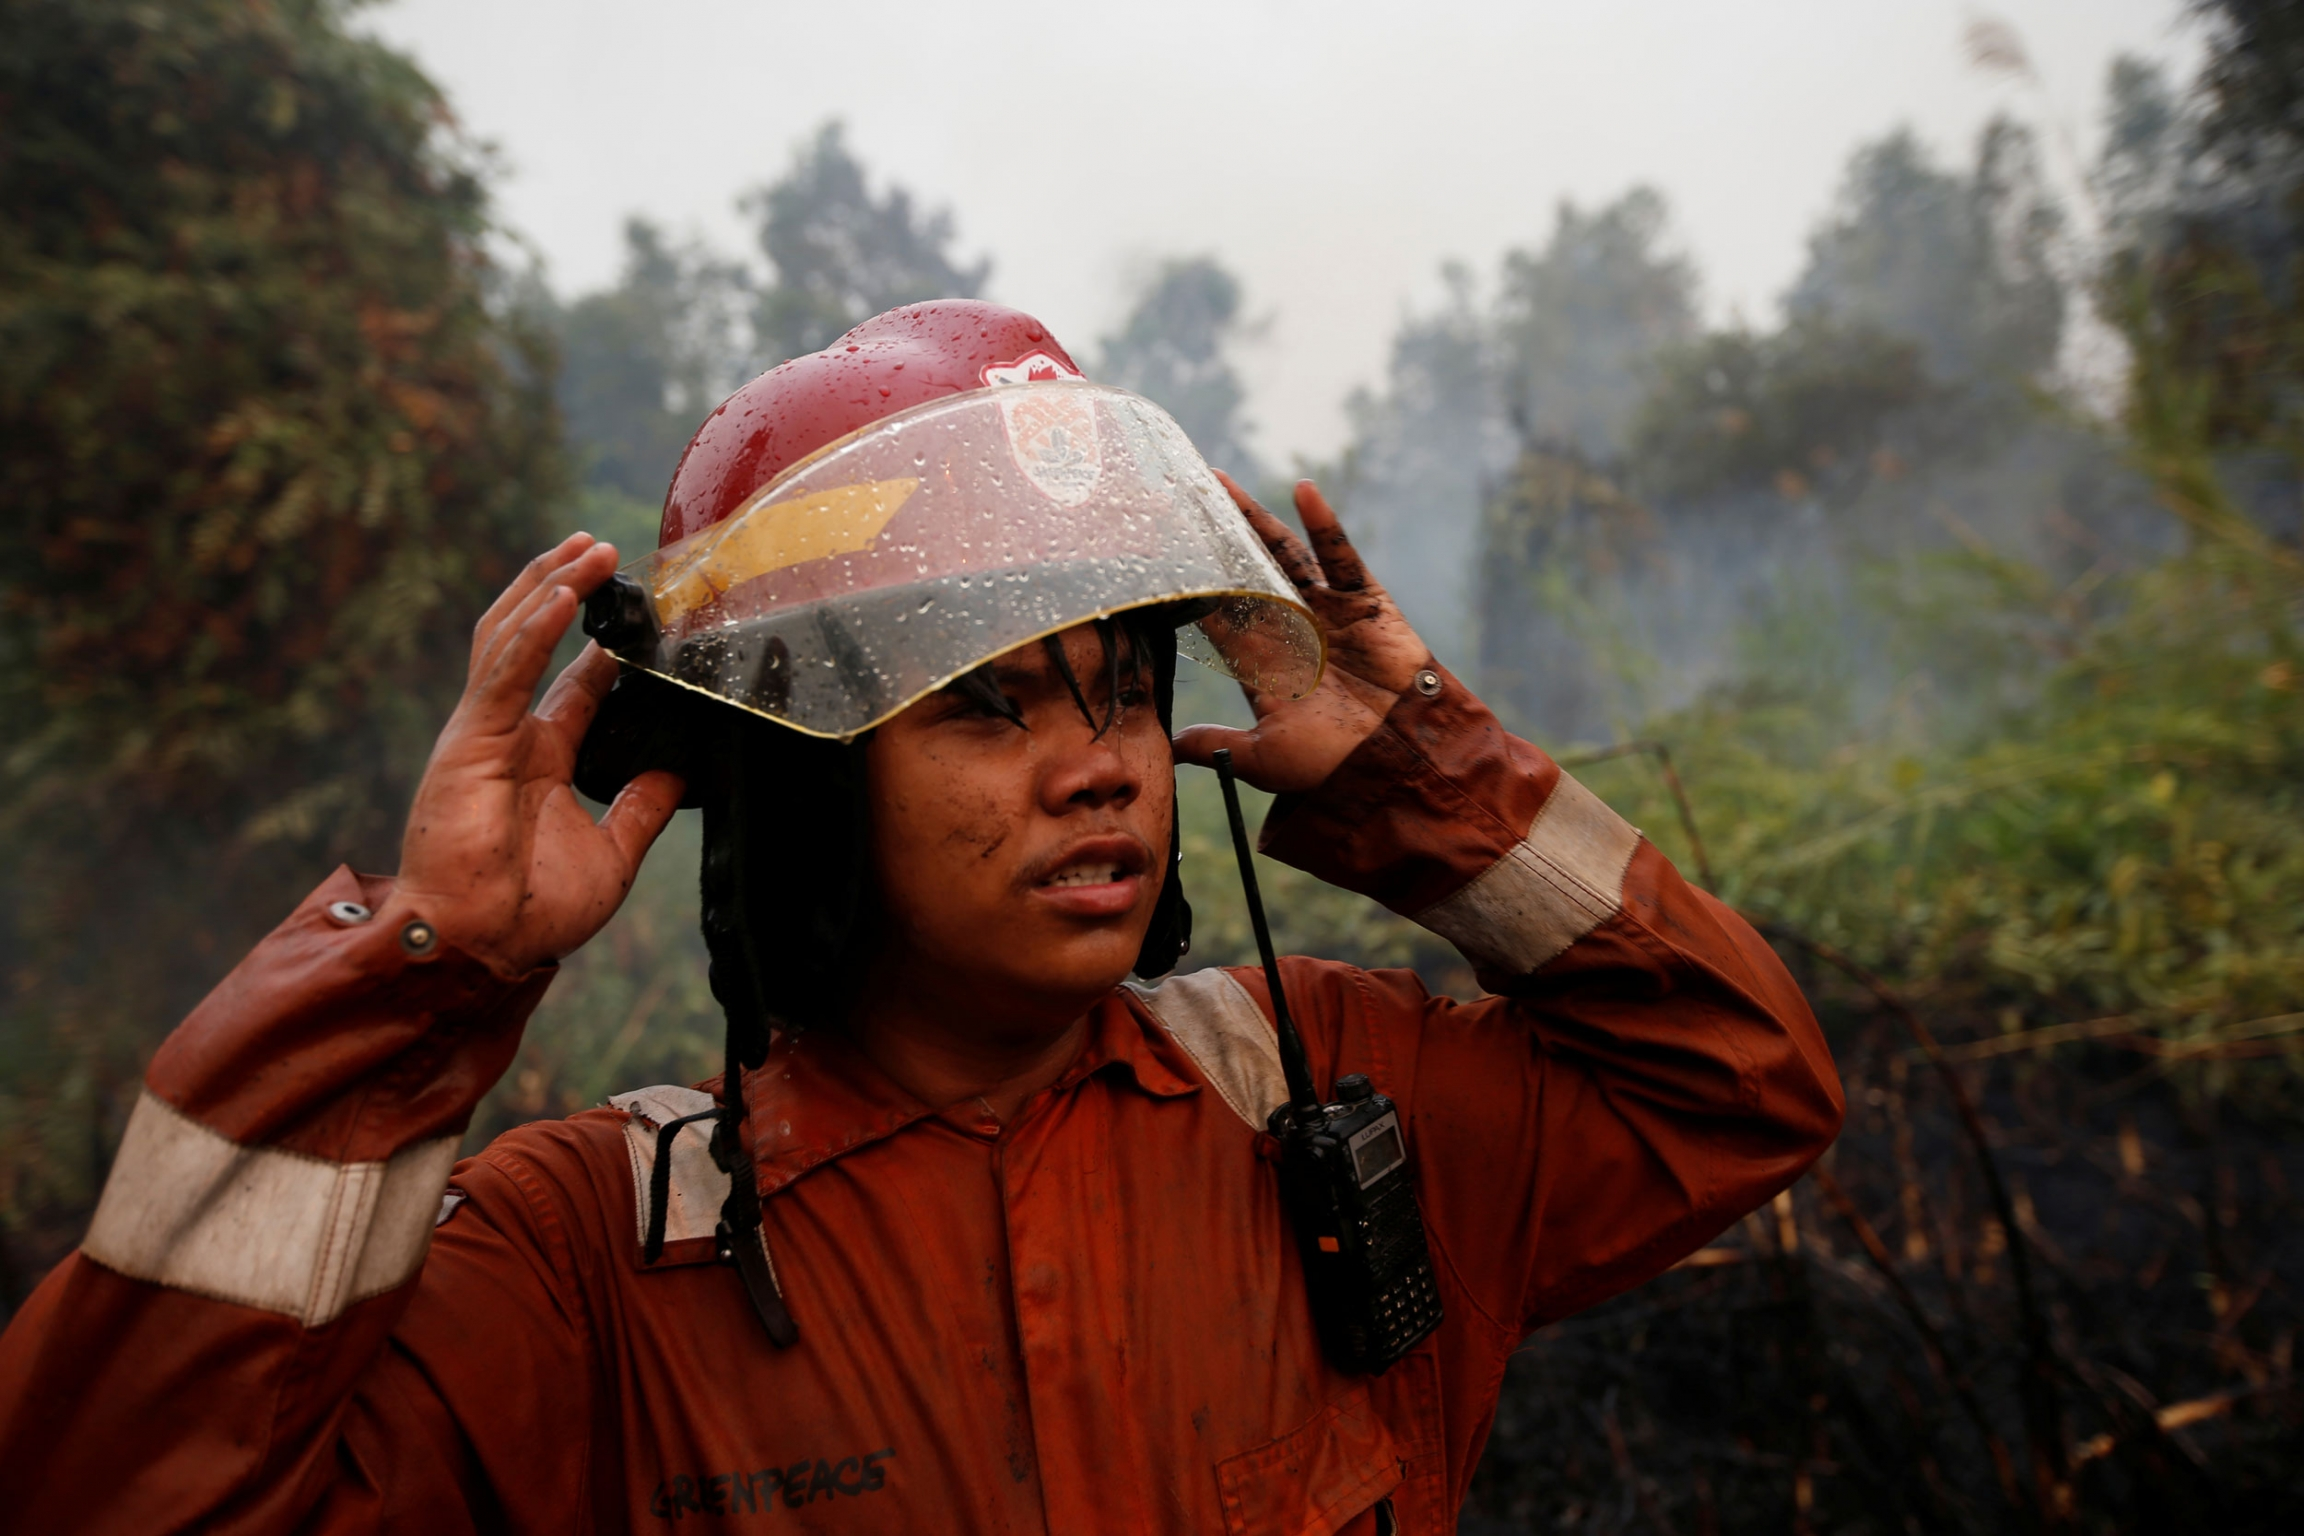 A man is shown with his hands rised to the brim of his fire helmet.